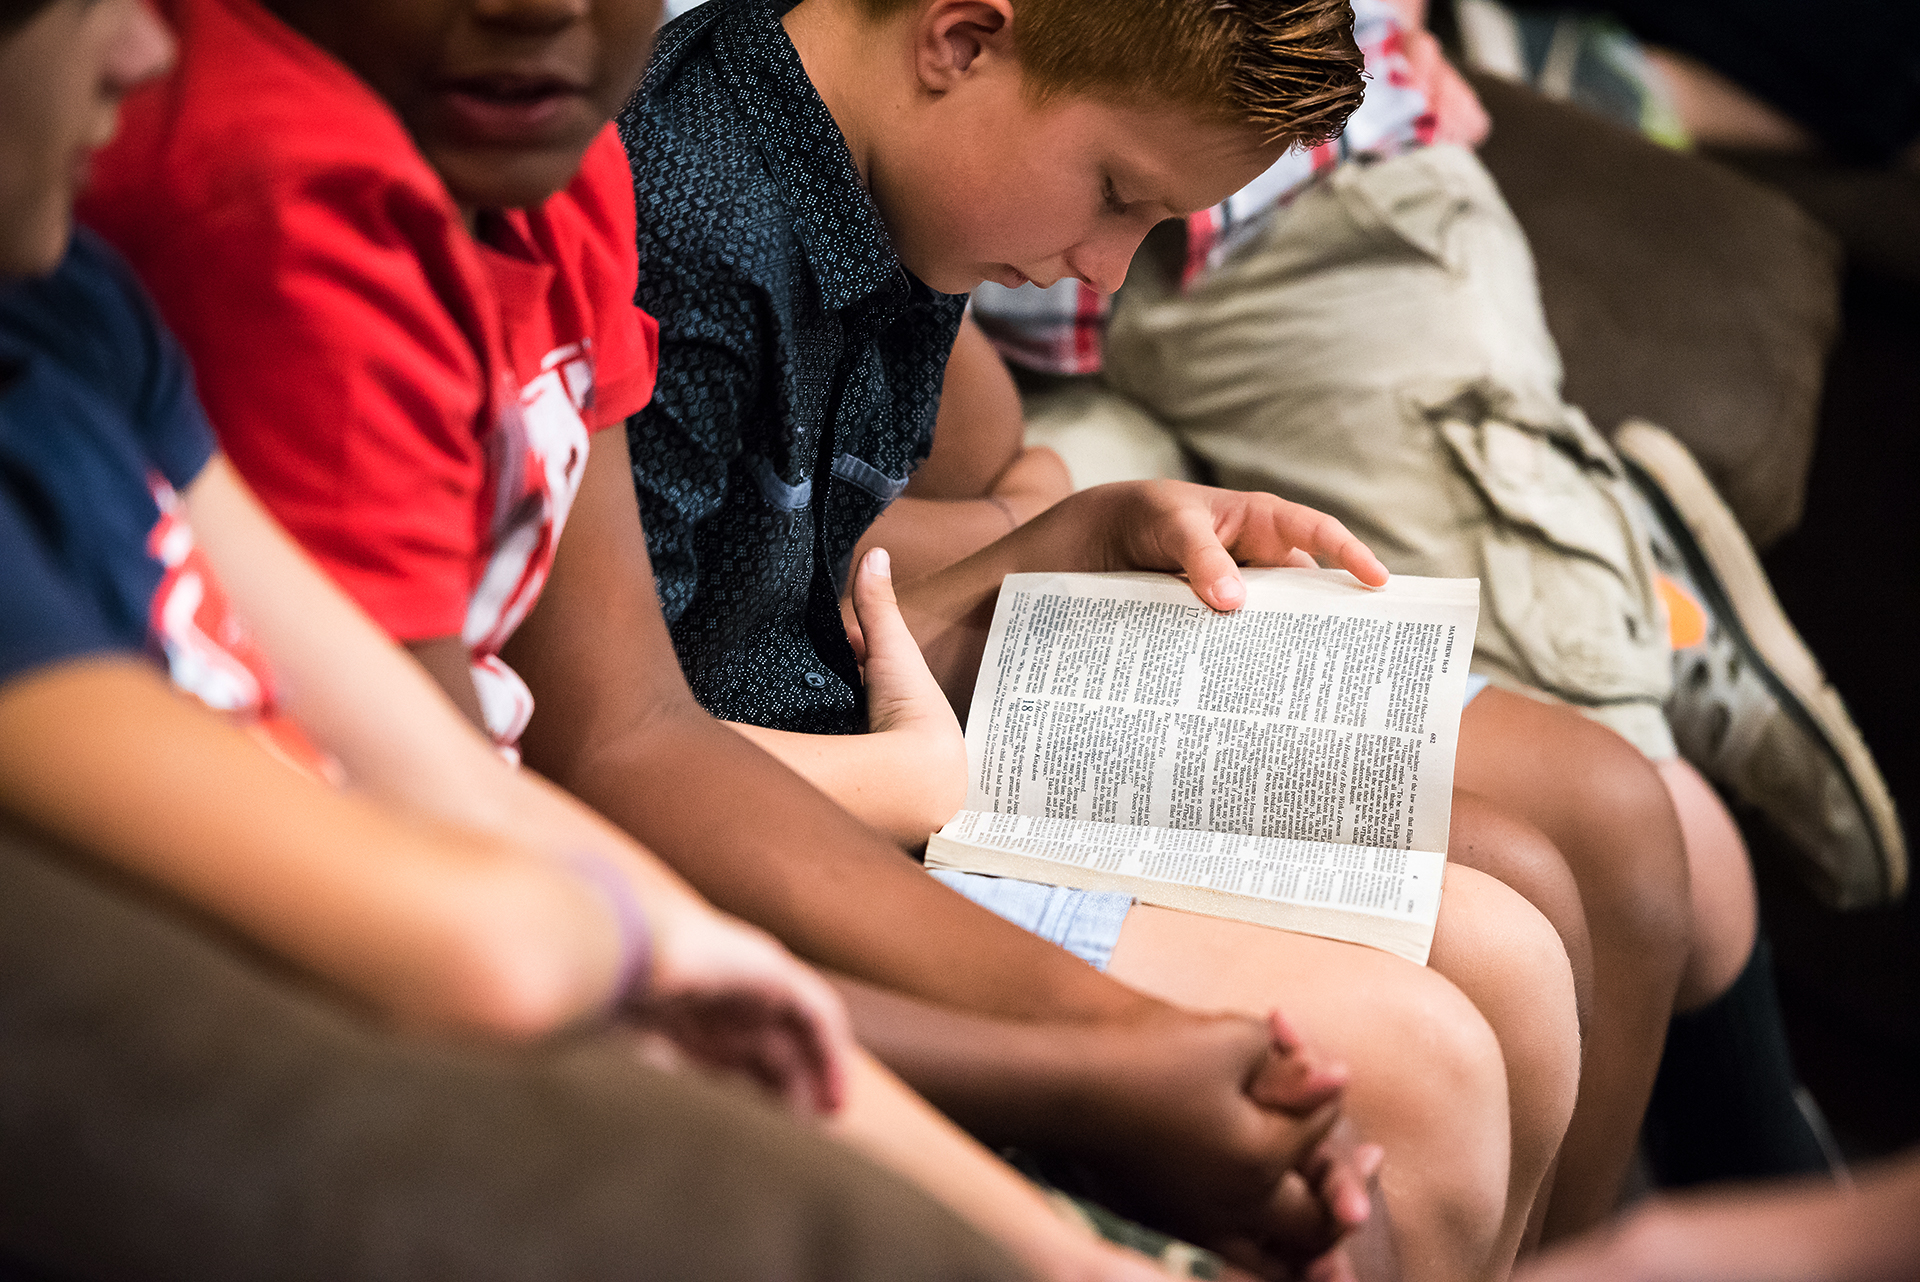 HEAR - Ephesians 1:13, John 5:24, Romans 10:14-17At ARCADEhs we desire for as many students as possible to hear Jesus, from the basics of the Gospel through the entire narrative of Scripture.